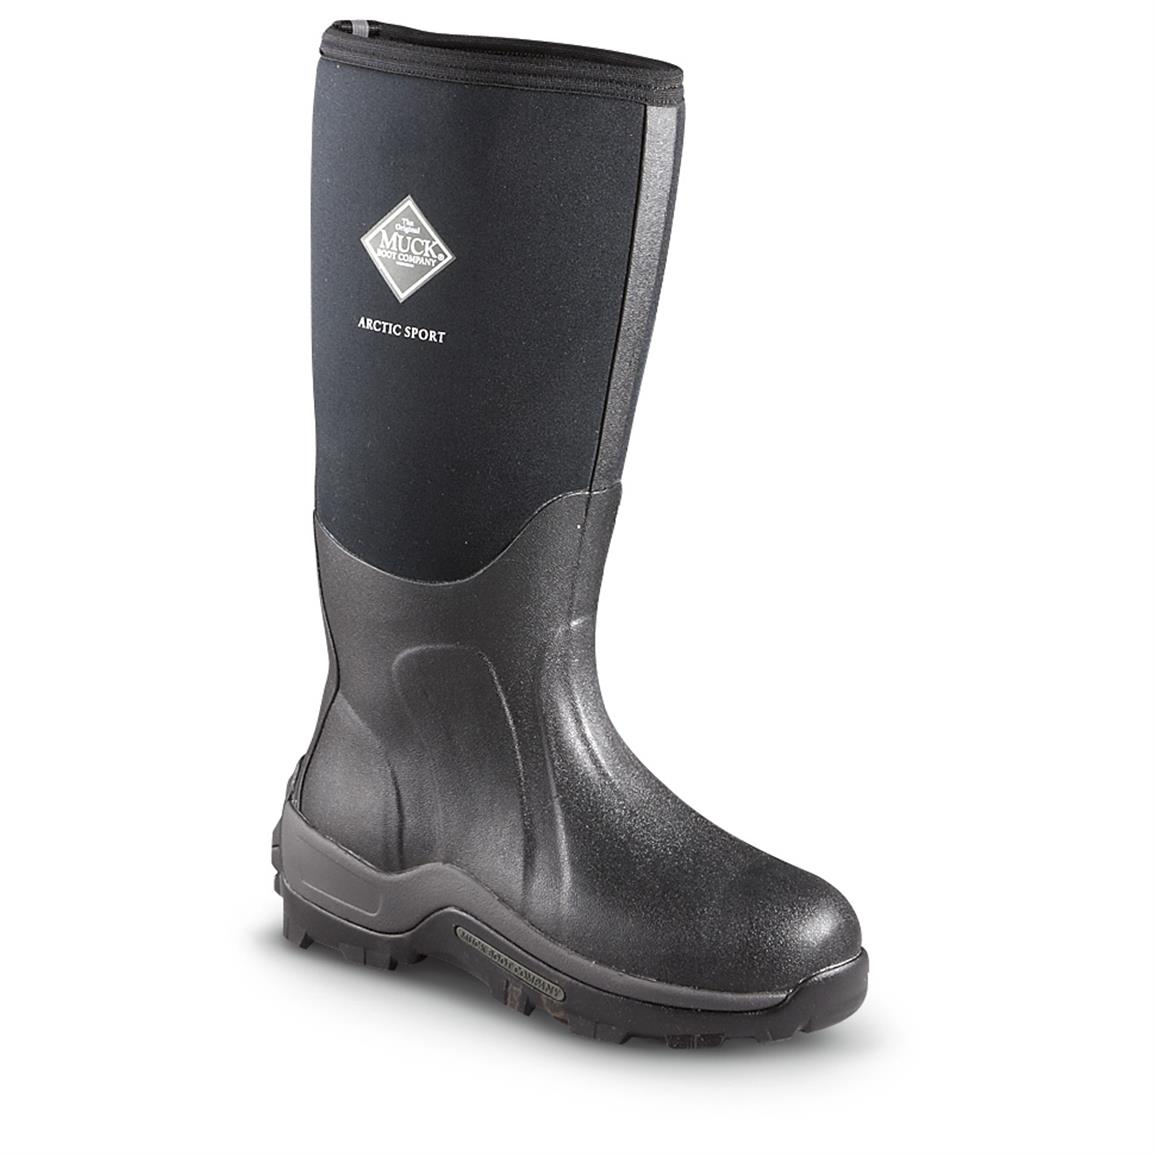 Muck Boot Men's Arctic Sport Waterproof Rubber Boots